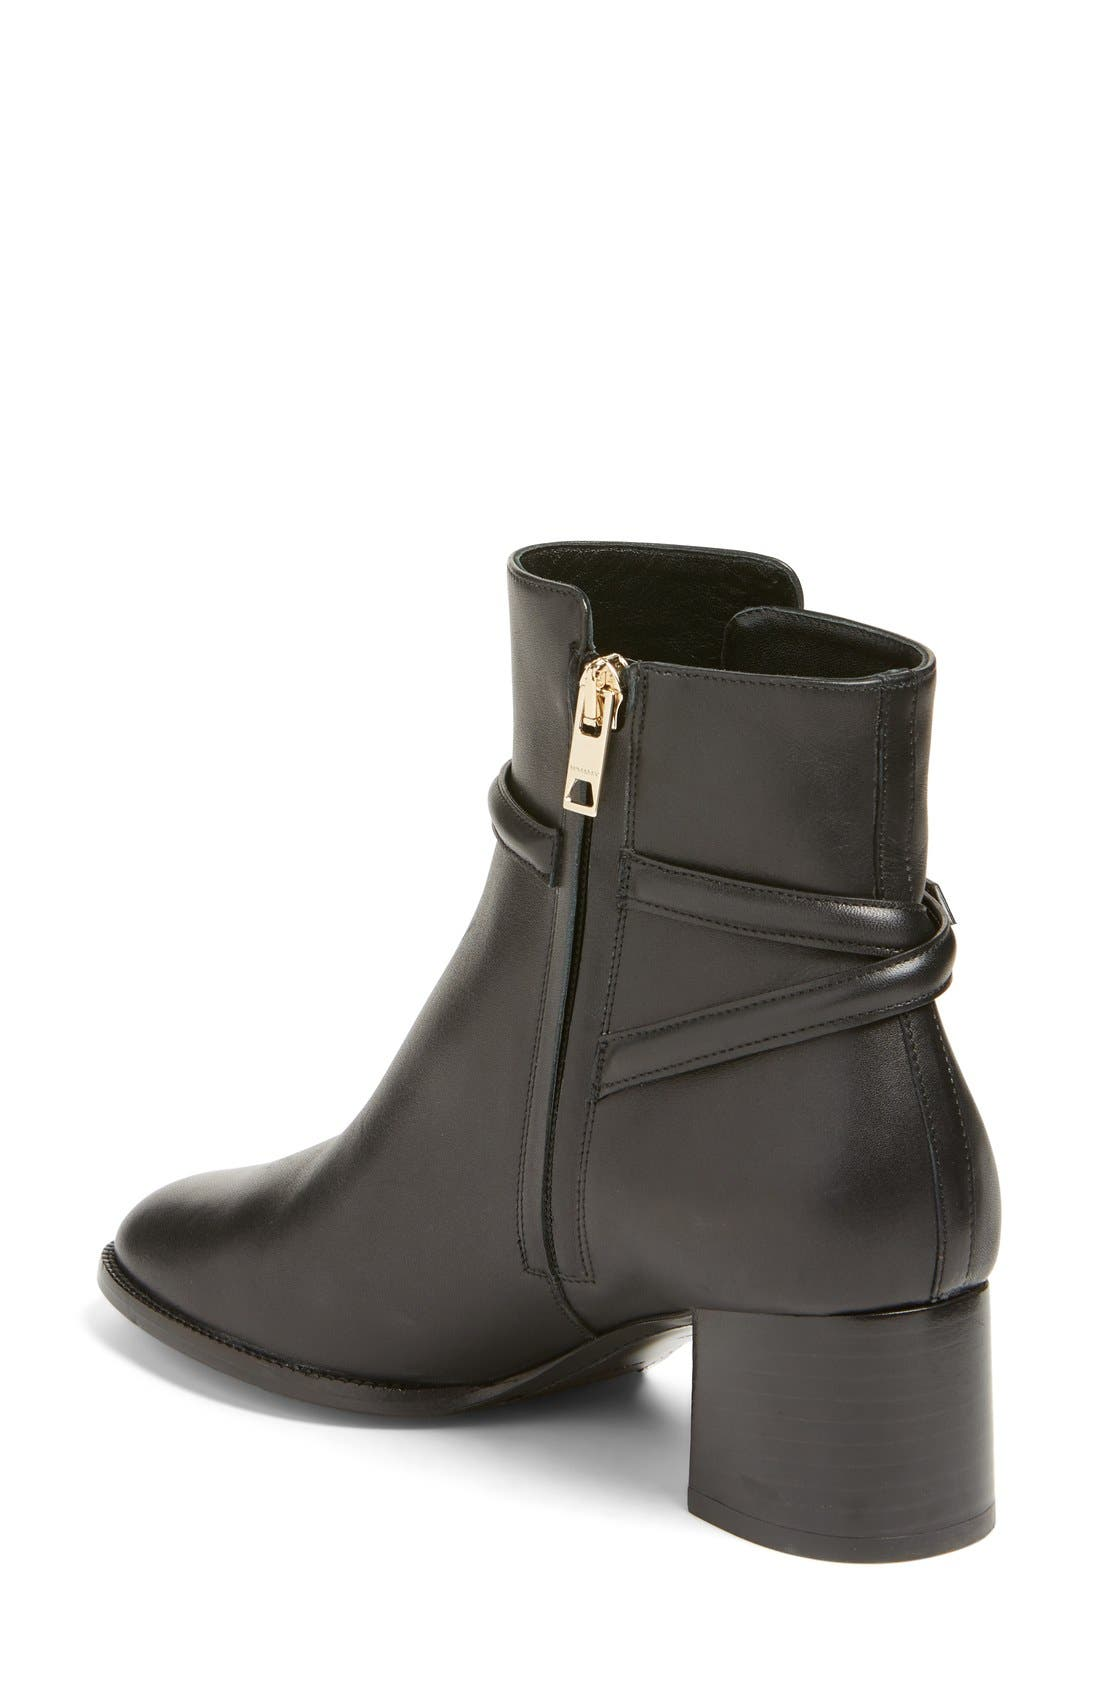 Alternate Image 2  - Burberry 'Shola' Block Heel Bootie (Women)